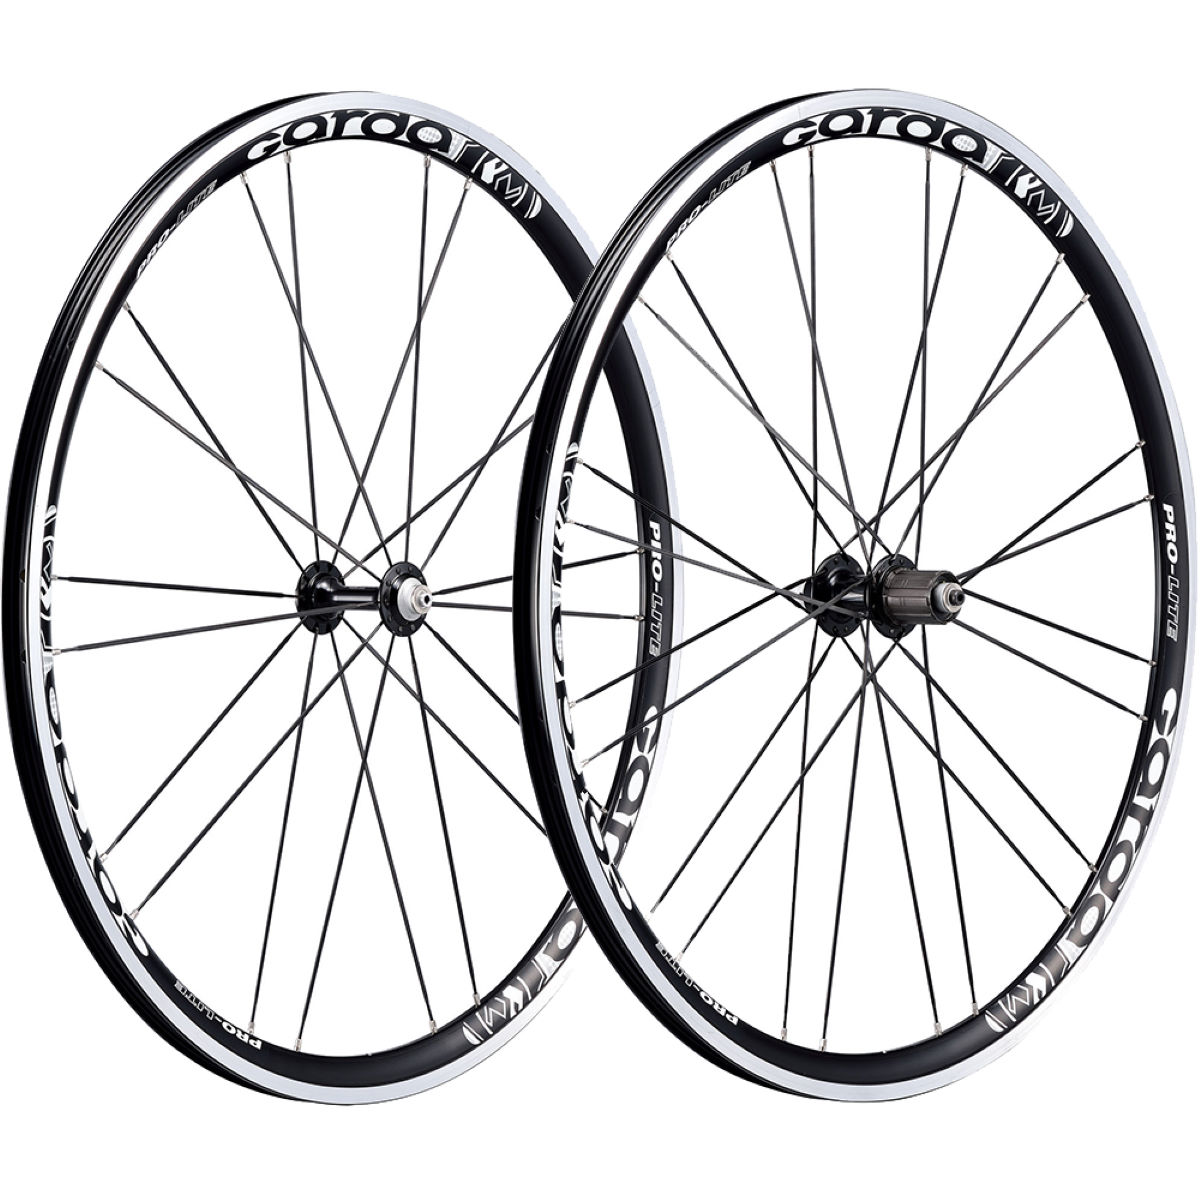 Pro Lite Garda Alloy Clincher Wheelset   Performance Wheels